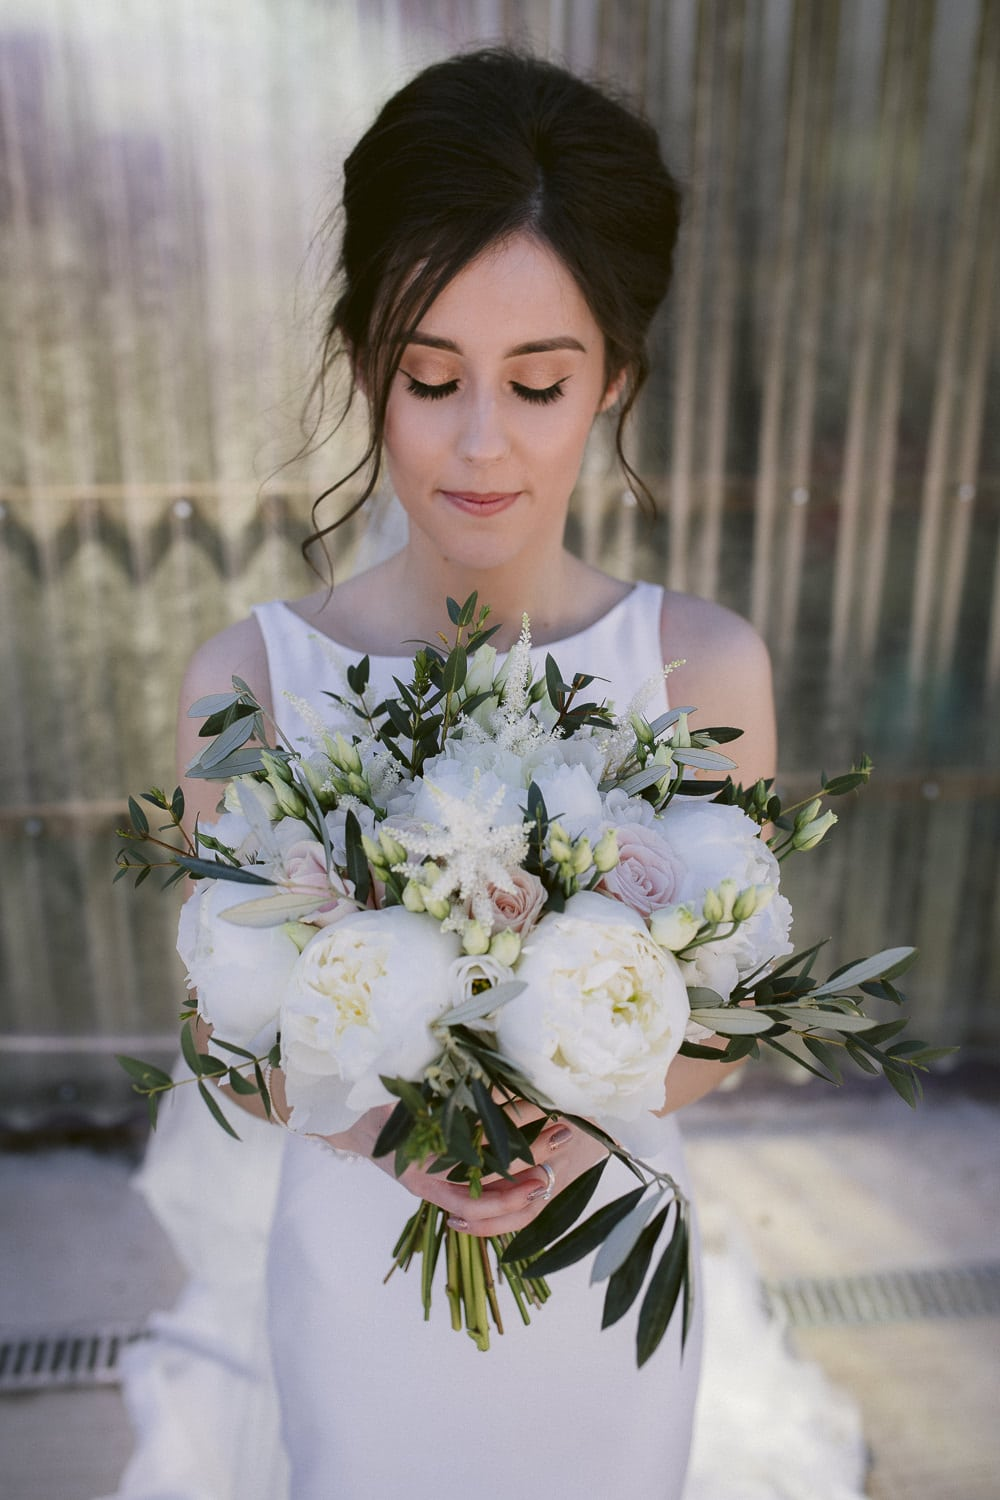 Bride with Bunch of Flowers Portrait